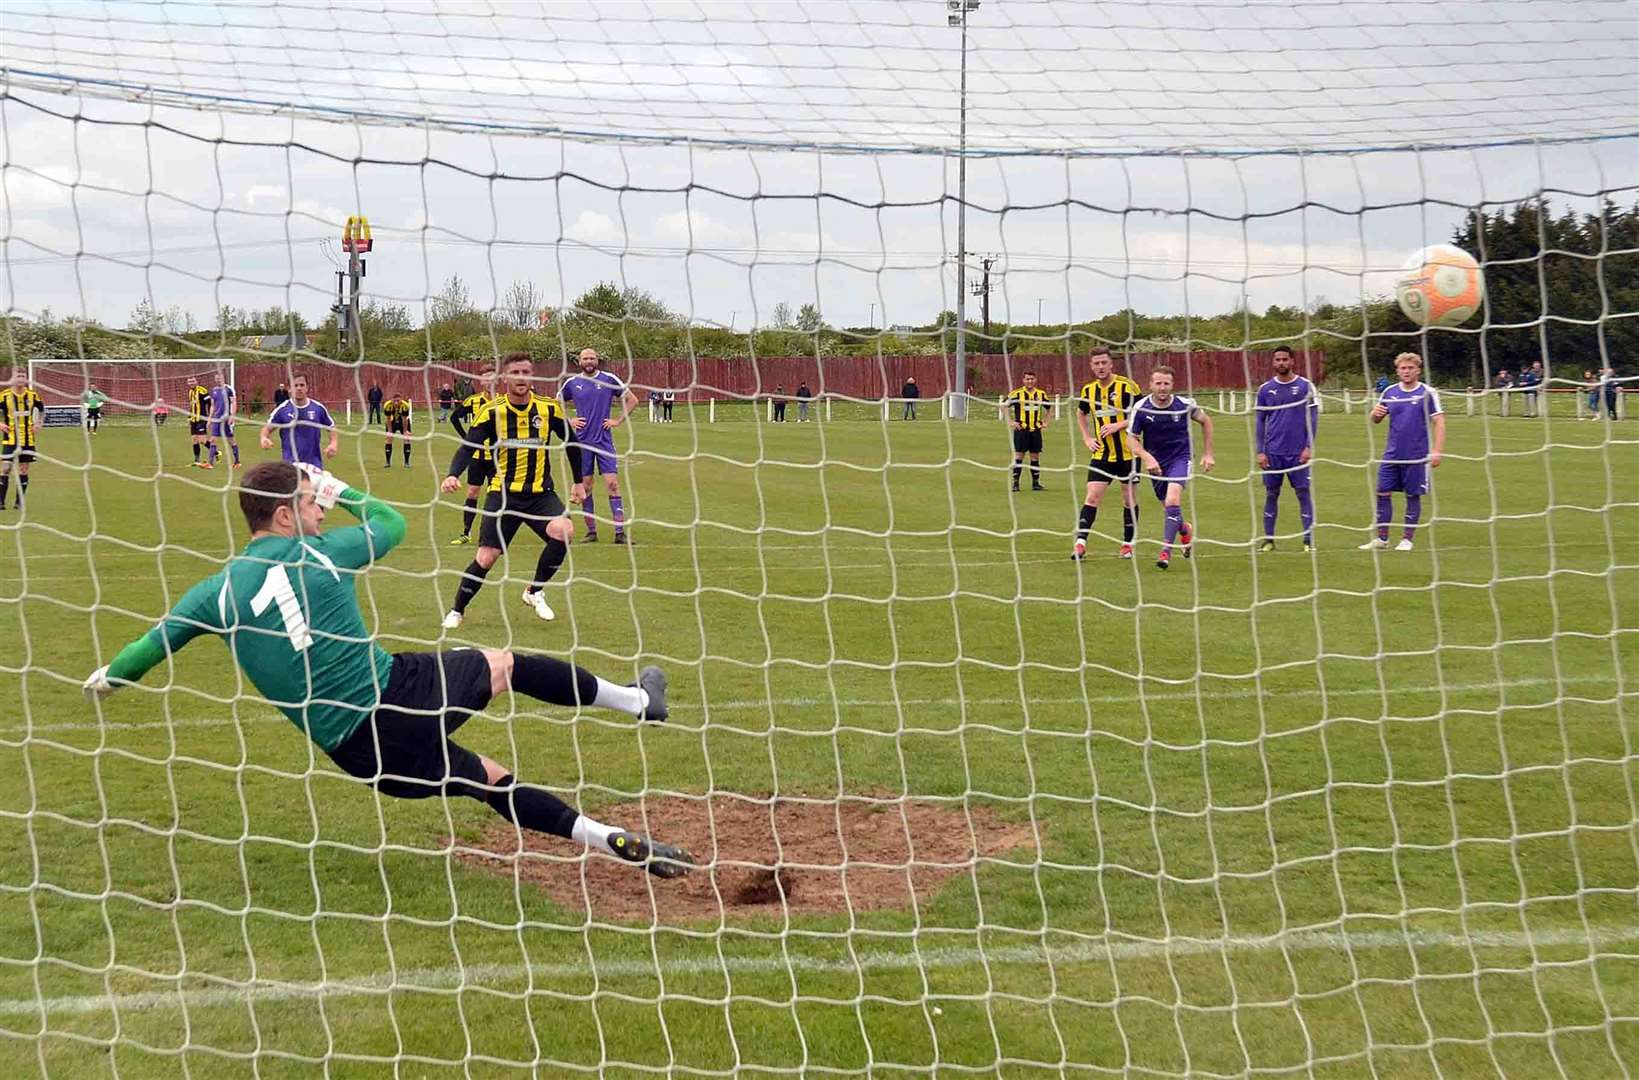 Josh Ford scores from the penalty spot.